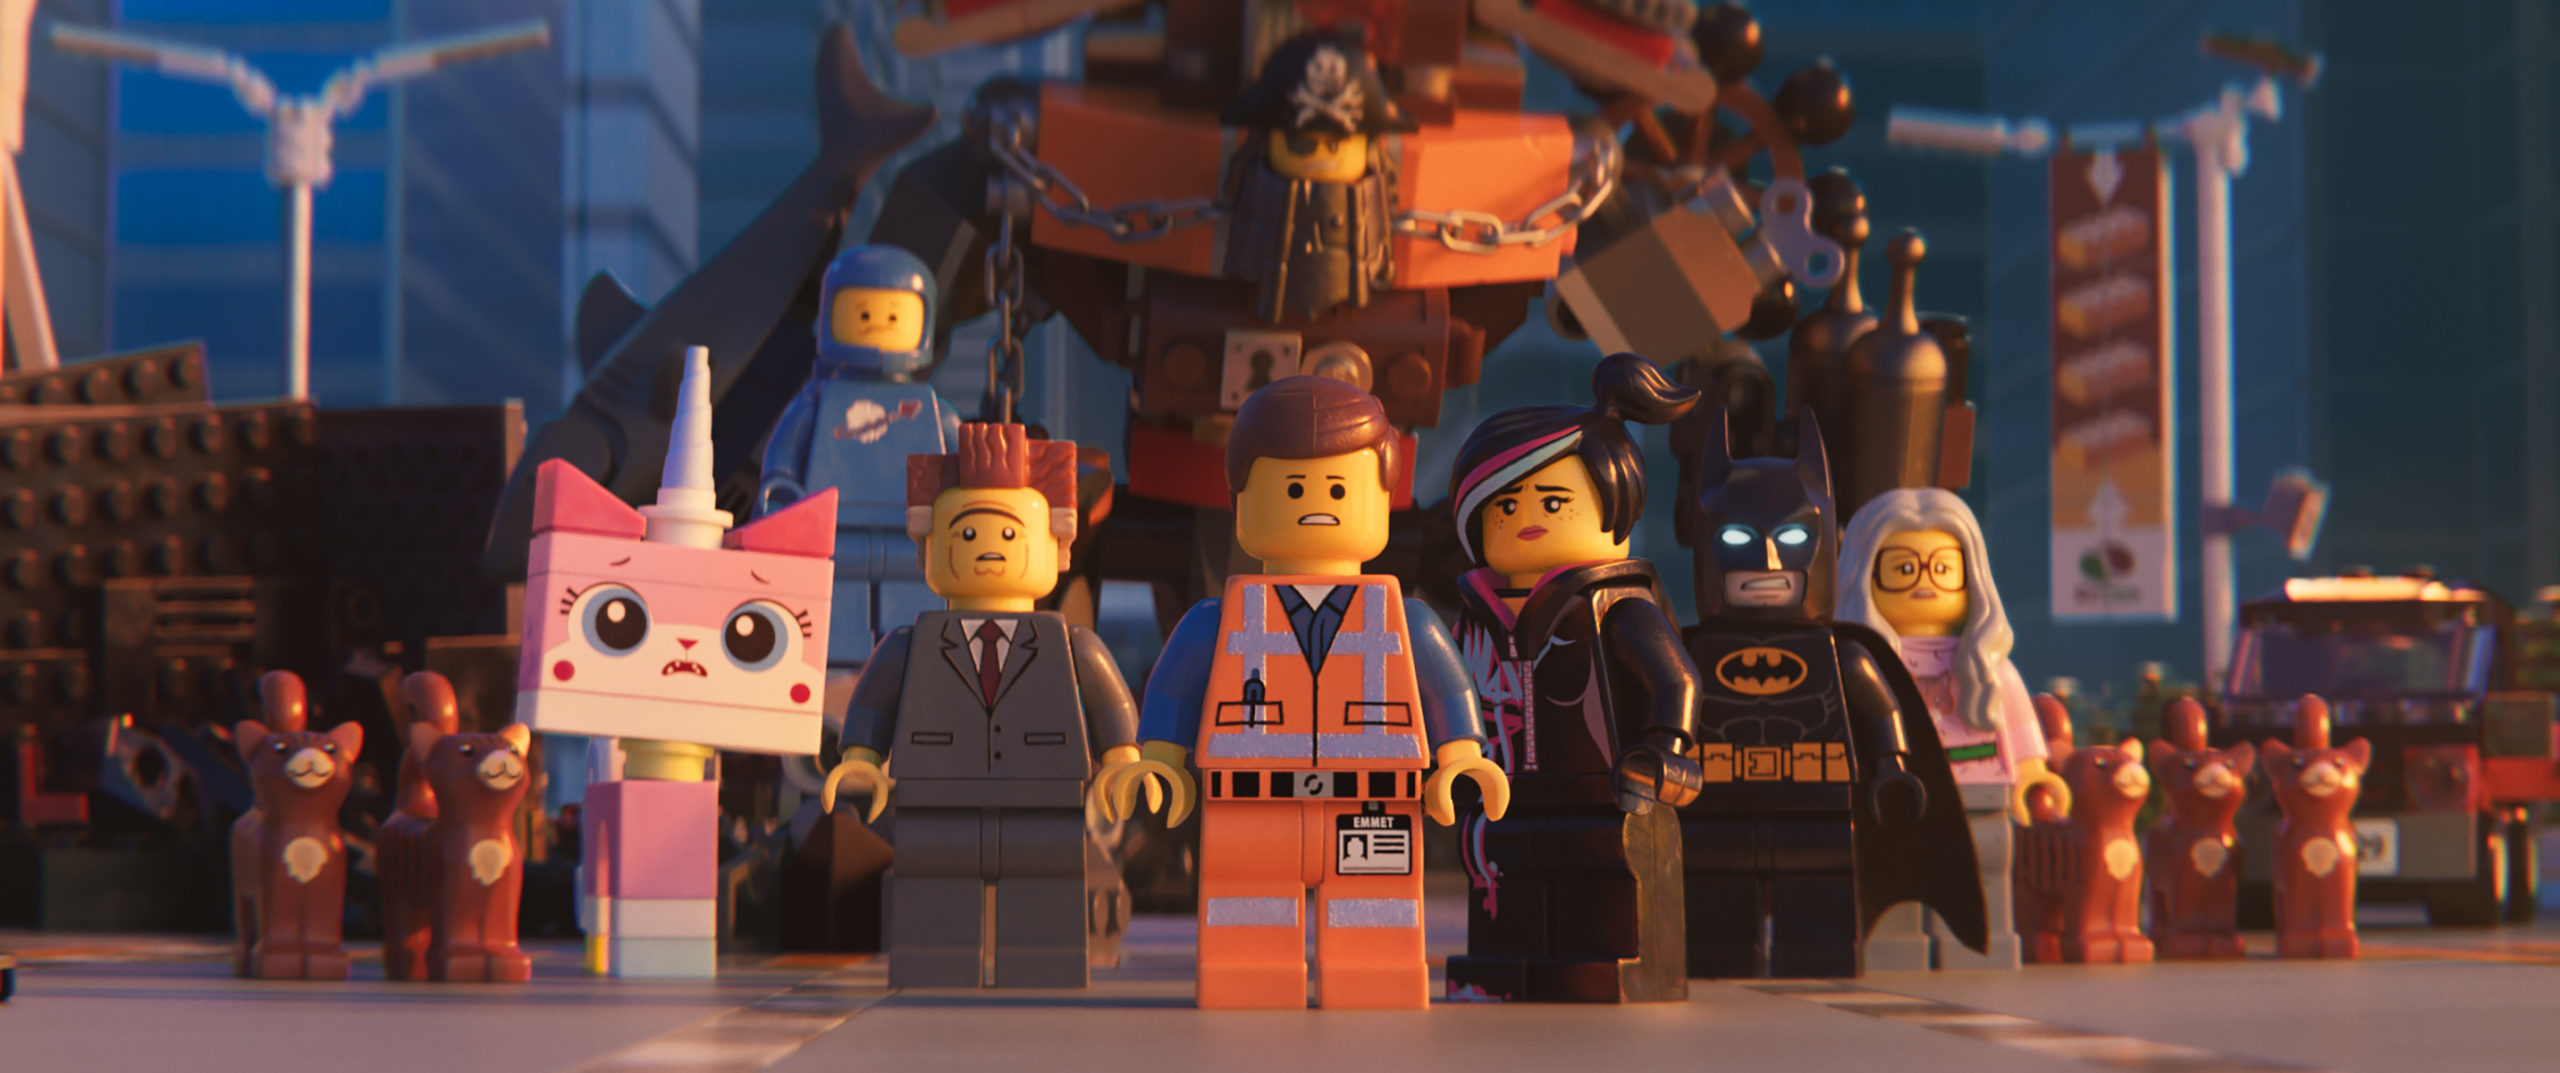 """(L-R) Unikitty (ALISON BRIE), Benny (CHARLIE DAY), President Business (WILL FERRELL), MetalBeard (NICK OFFERMAN), Emmet (CHRIS PRATT), Lucy/Wyldstyle (ELIZABETH BANKS) and Batman (WILL ARNETT) in a scene from the animated adventure """"The LEGO® Movie 2: The Second Part,"""" from Warner Bros. Pictures and Warner Animation Group, in association with LEGO System A/S, a Warner Bros. Pictures release."""